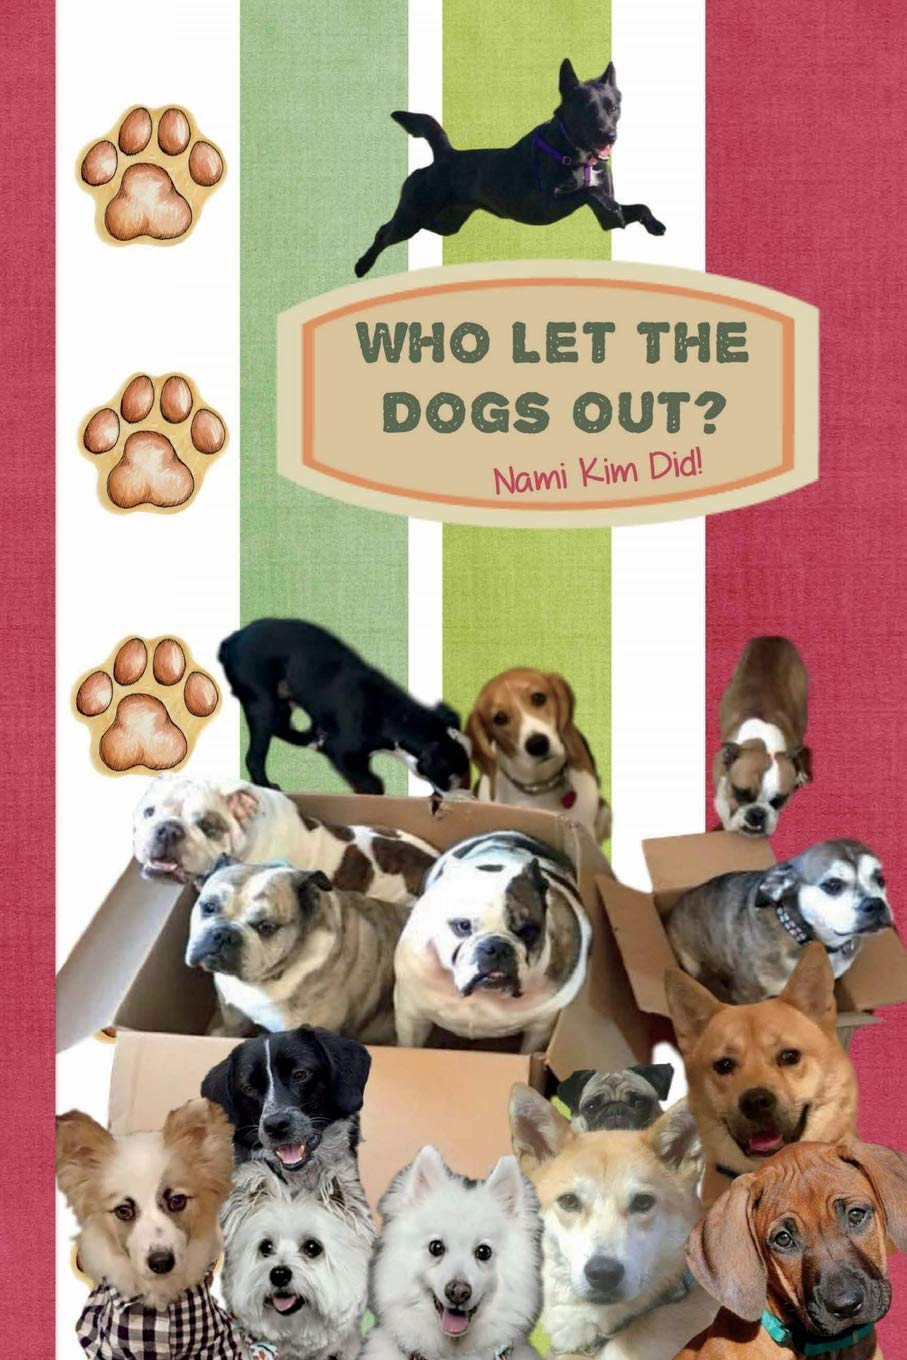 Download Who Let The Dogs Out? ... Nami Kim Did!: Pawsome collection of full color illustrated wit and wisdom from the world of our canine friends. 6 x 9 (Save Korean Dogs - Journals & Planners) ebook